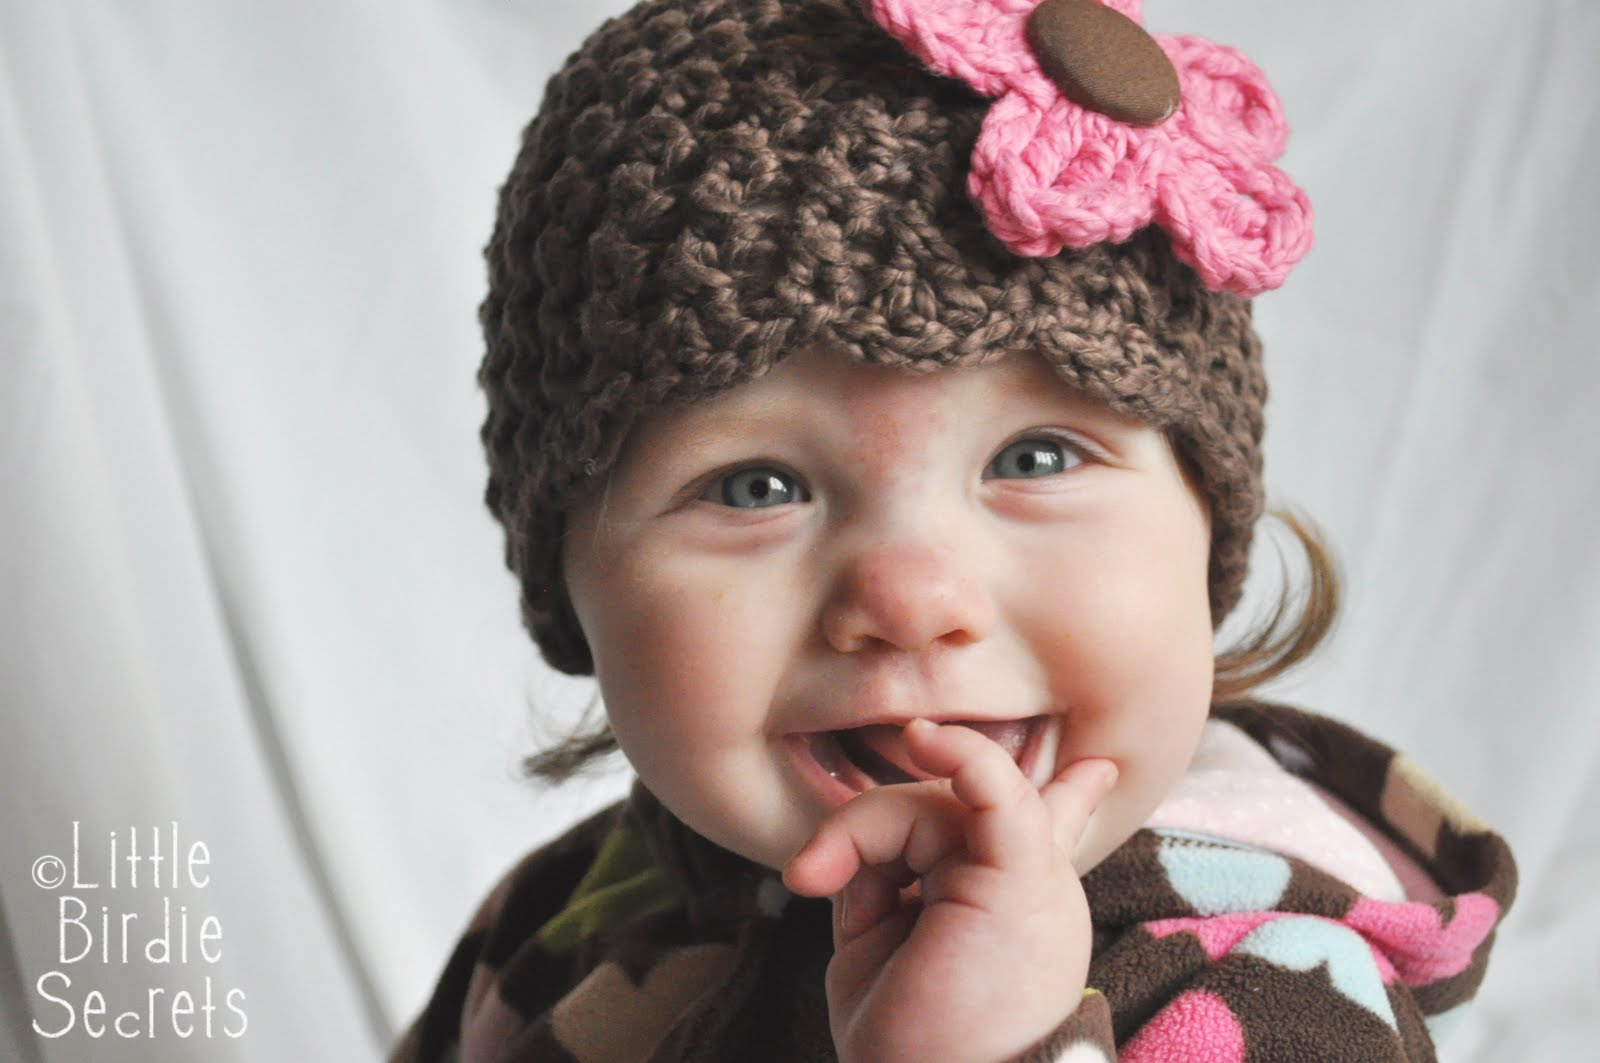 Crochet Patterns For Baby Girl : Easy Crochet Baby Hats ? Crochet Club